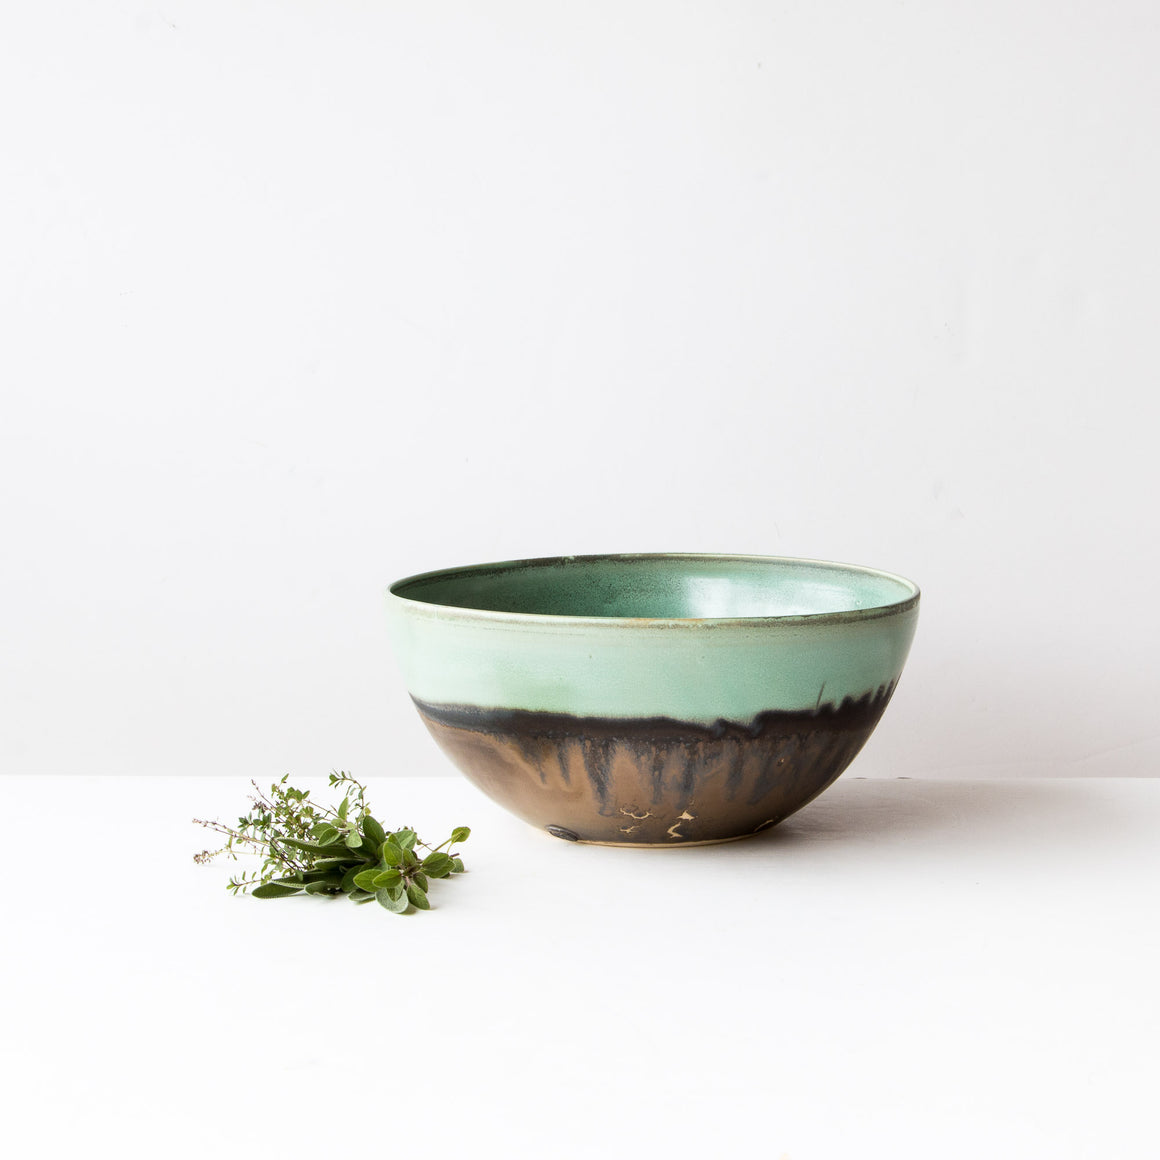 Large Handmade Turquoise Stoneware  Bowl - Sold by Chic & Basta